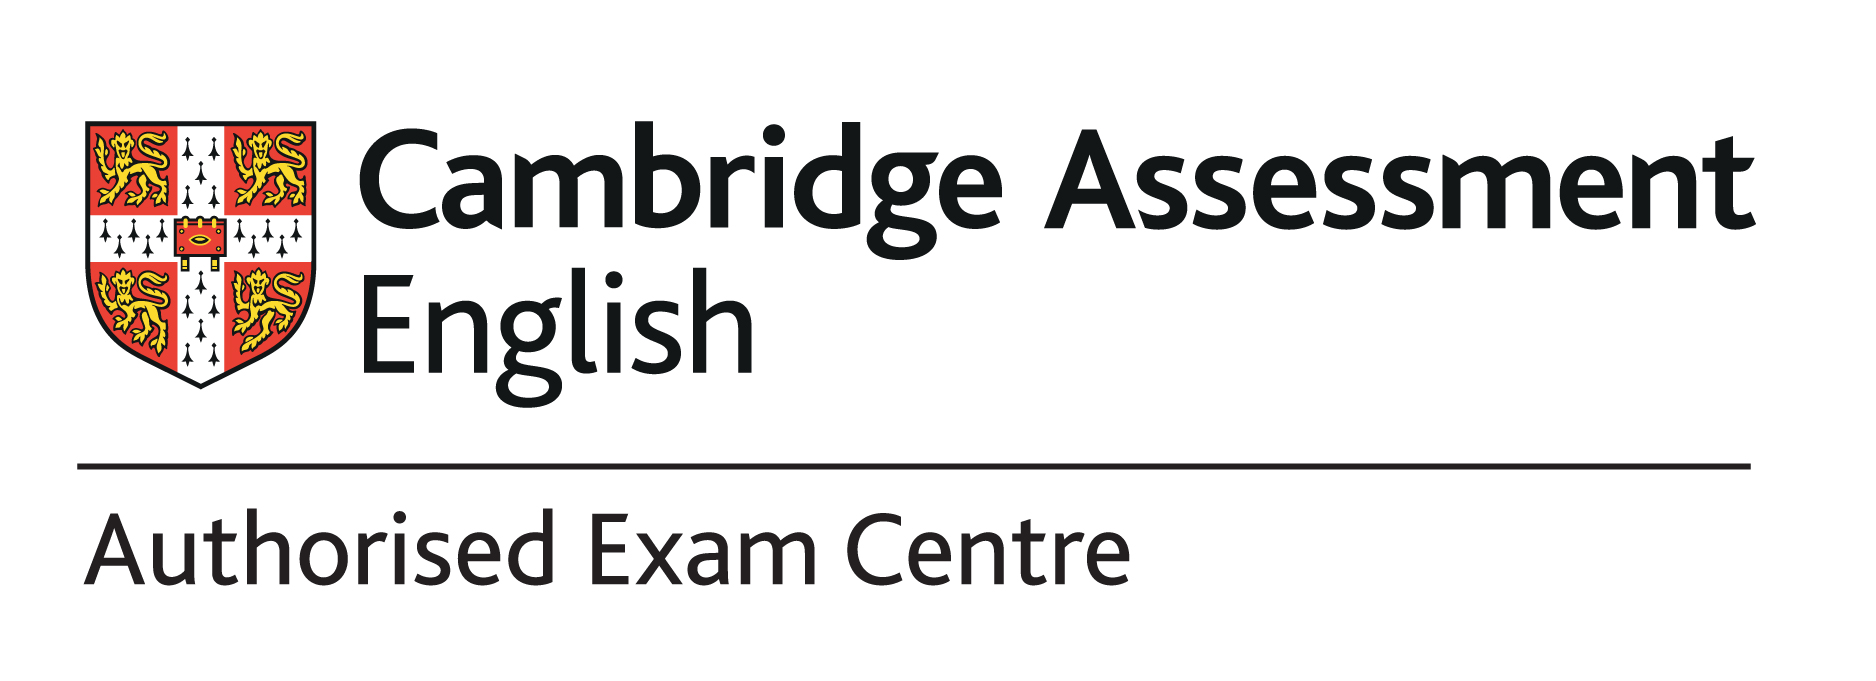 Cambridge Authorised Exam Centre